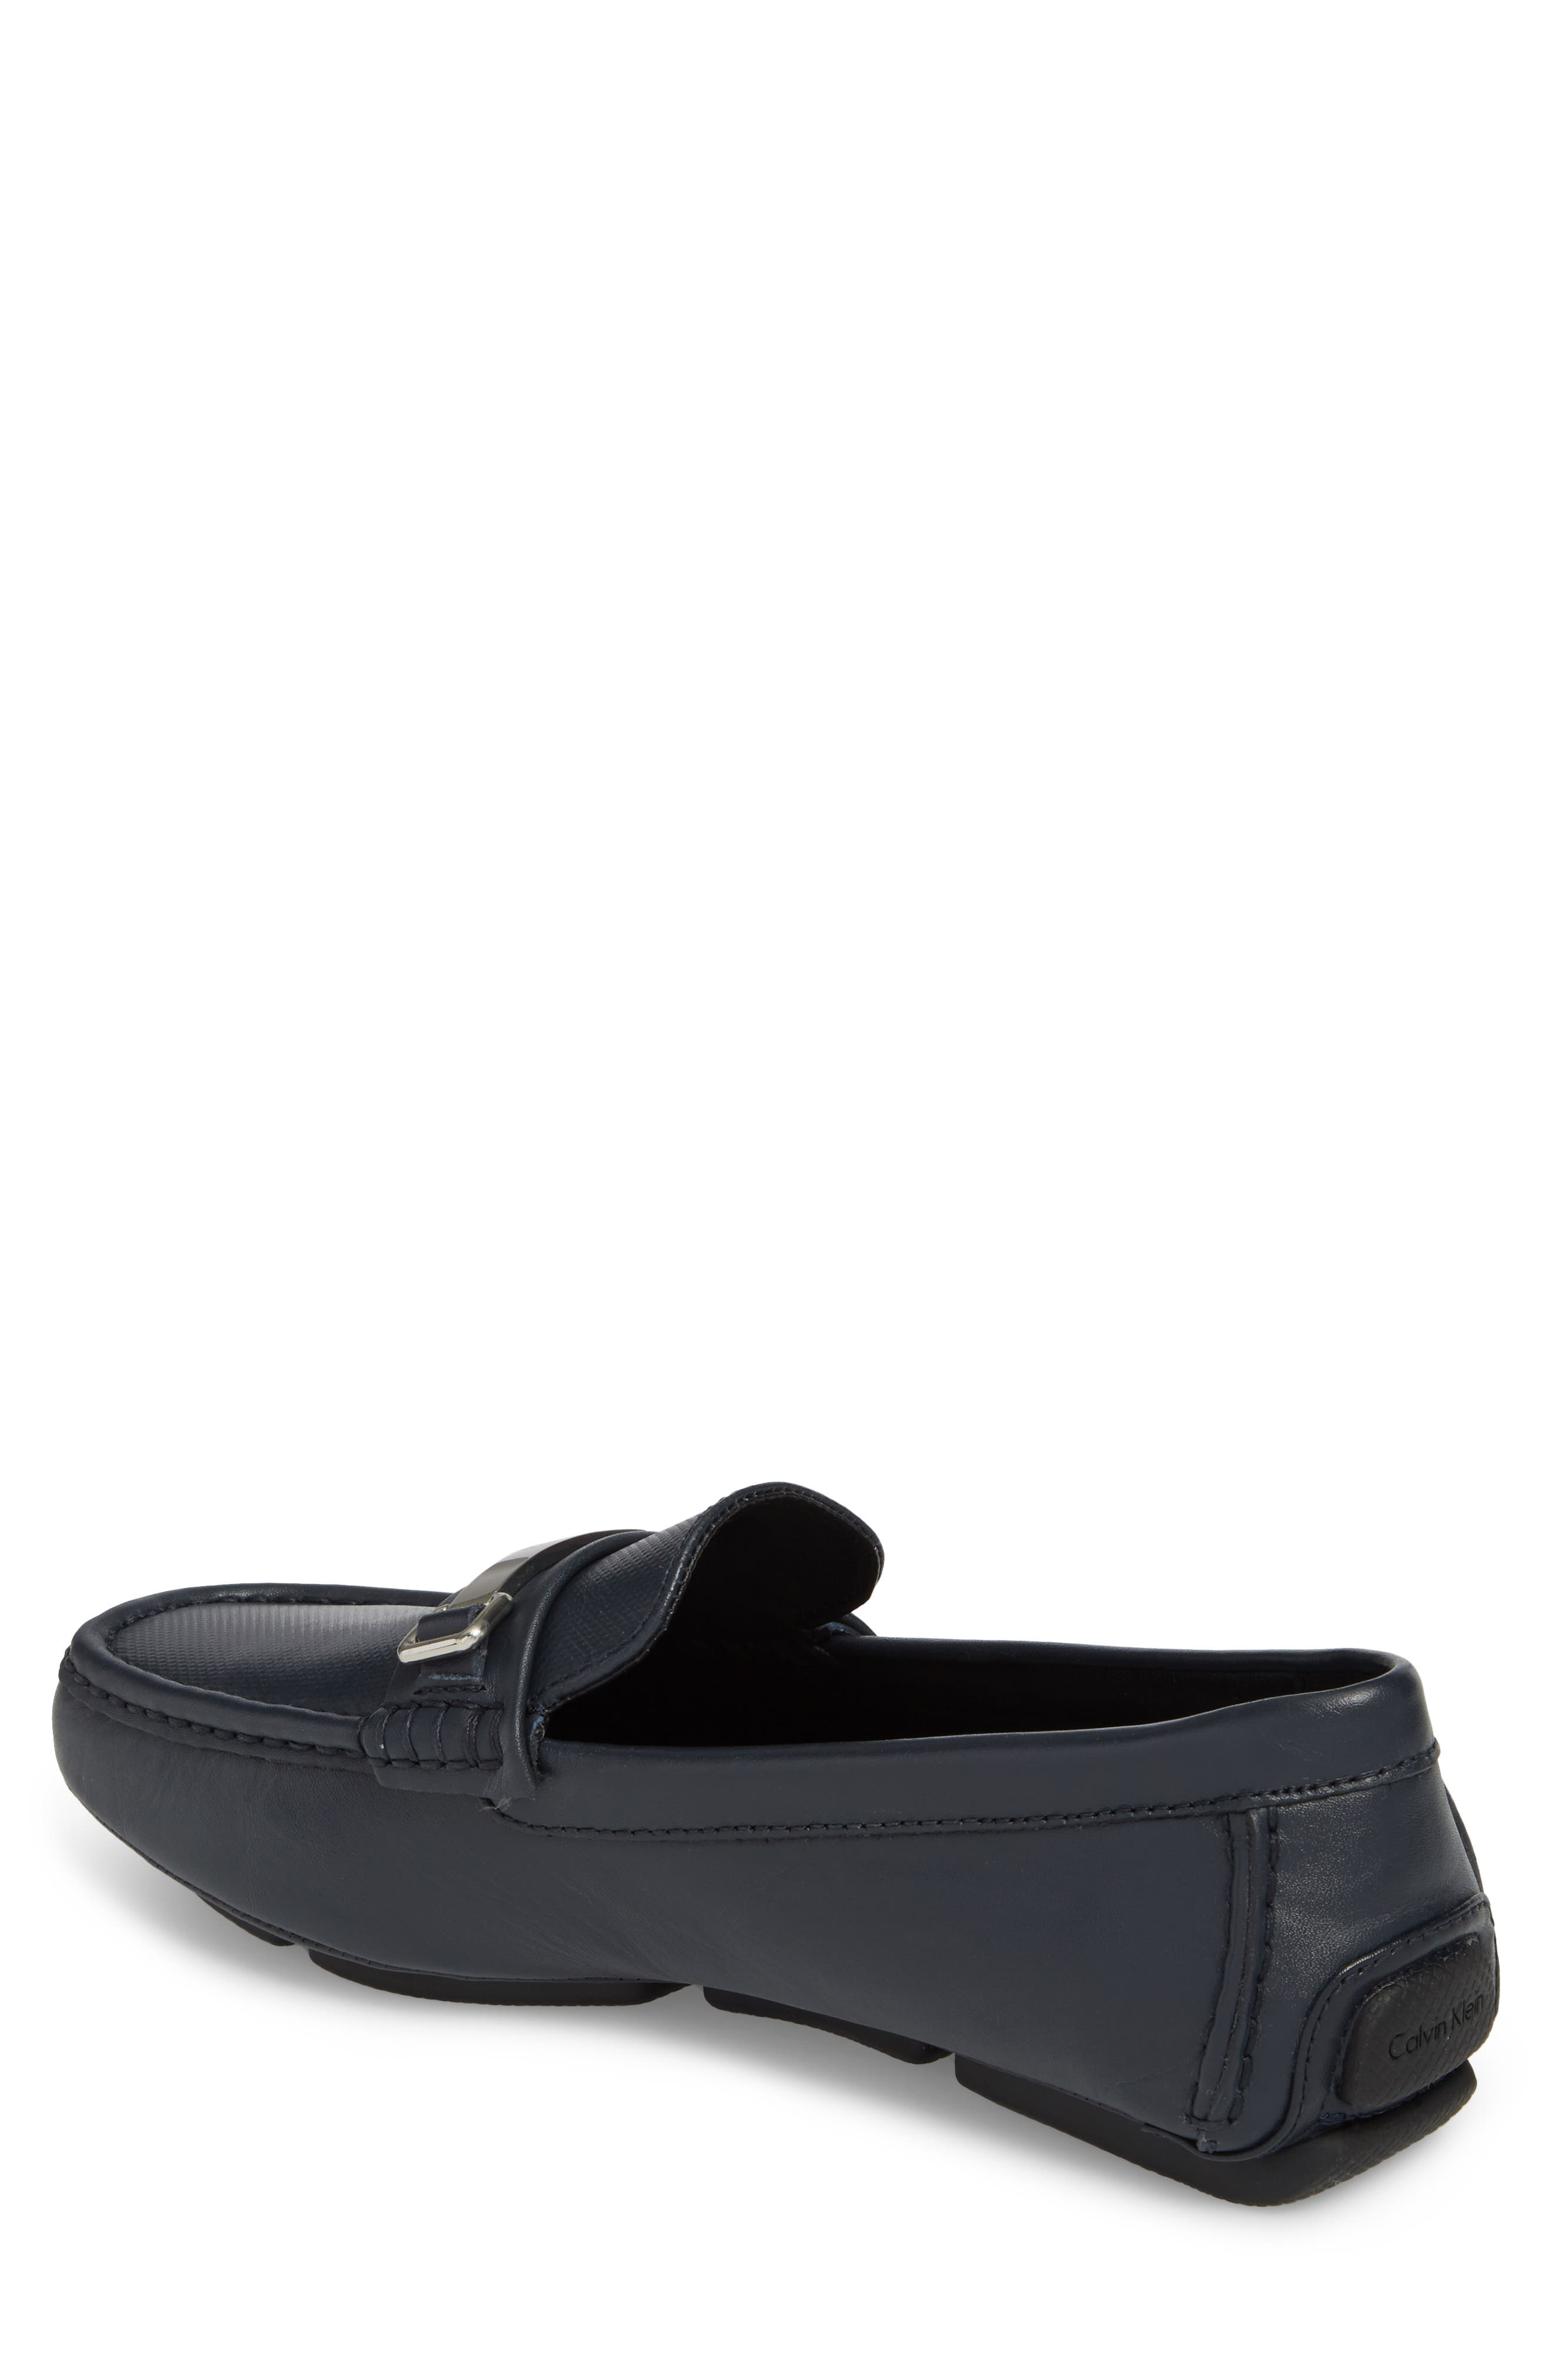 Maddix Textured Driving Moccasin,                             Alternate thumbnail 2, color,                             Dark Navy Leather